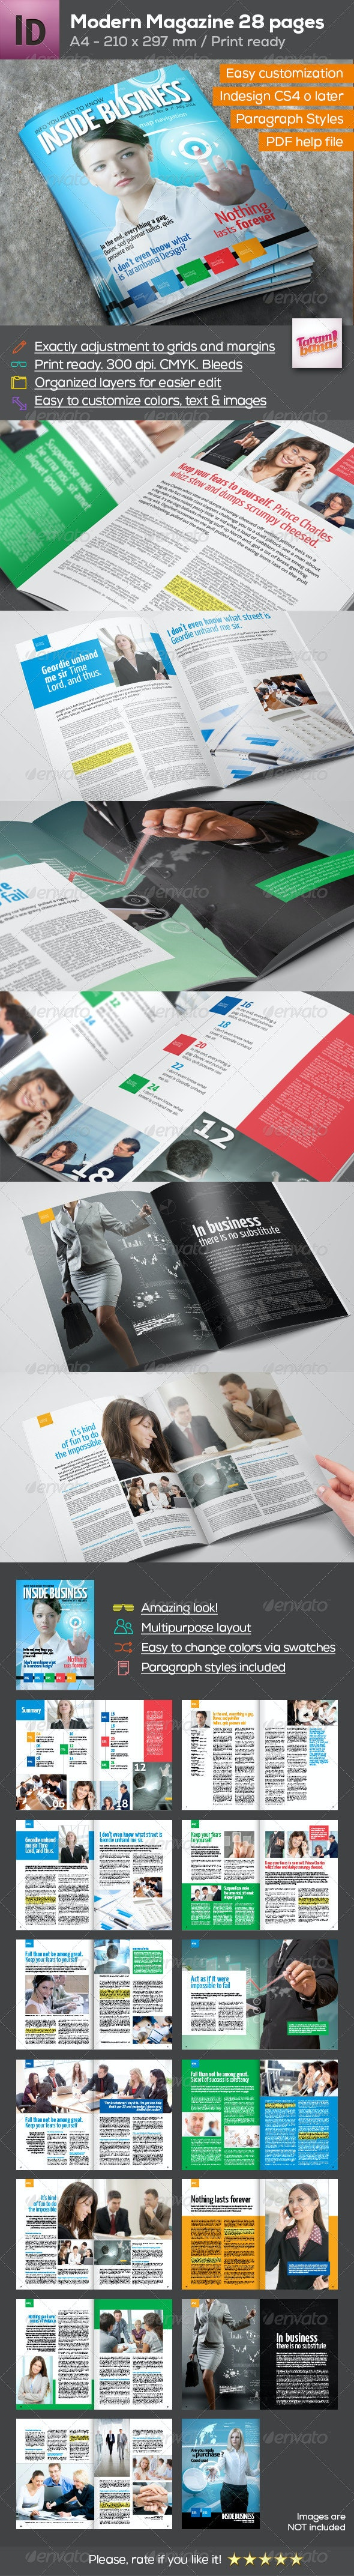 Business Magazine A4 - 28 pages - Magazines Print Templates